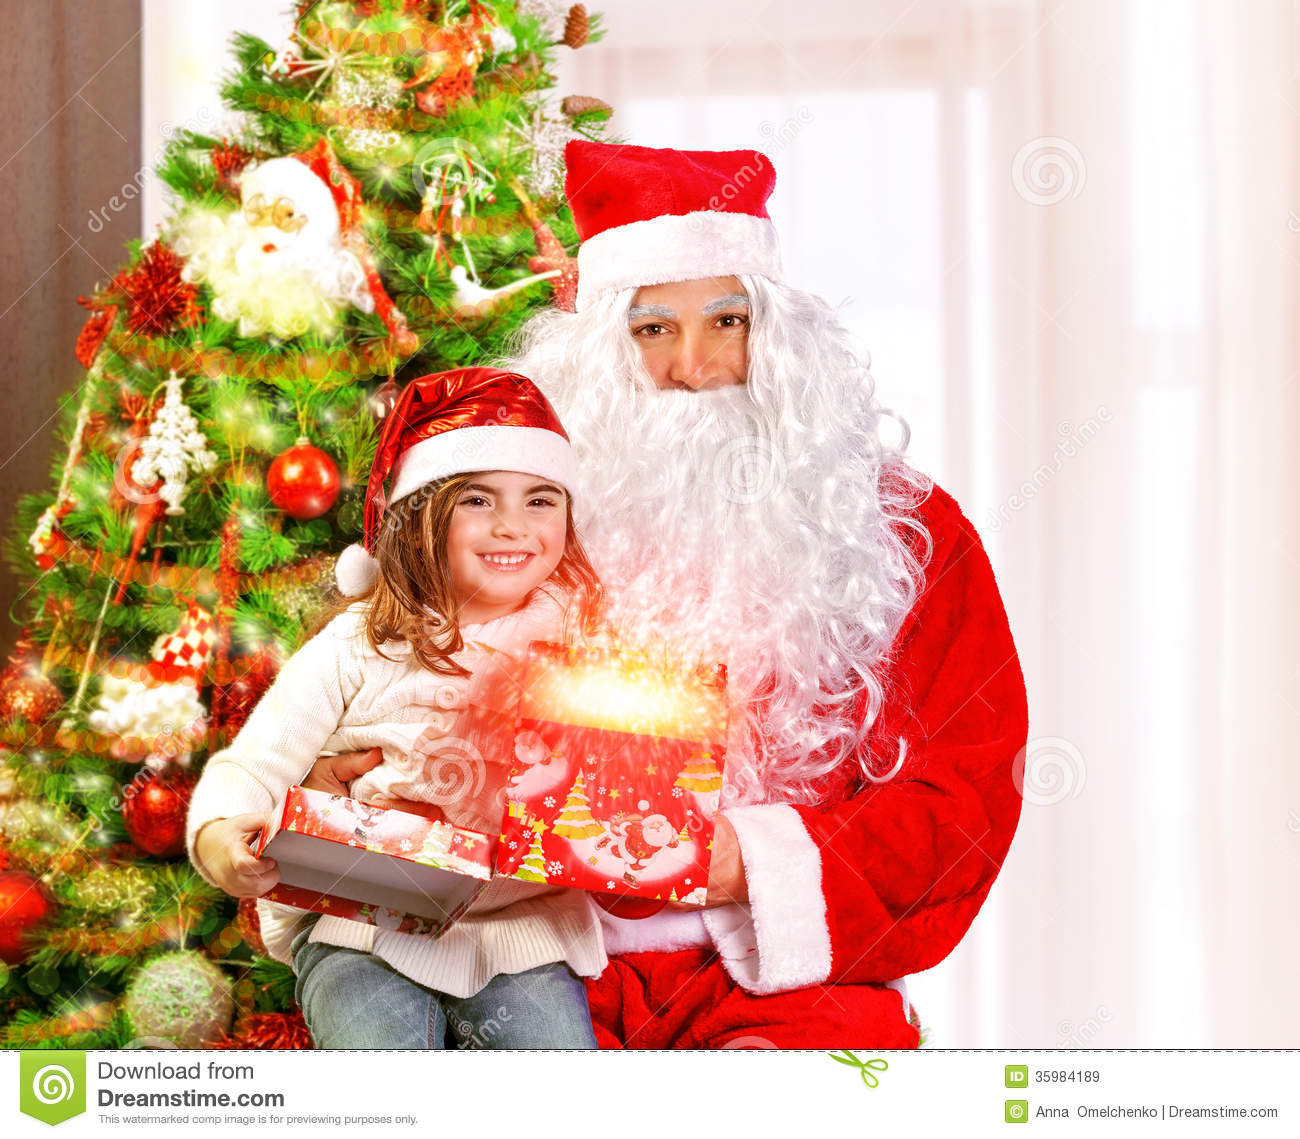 Christmas Children Party: Christmas Party For Children Royalty Free Stock Images